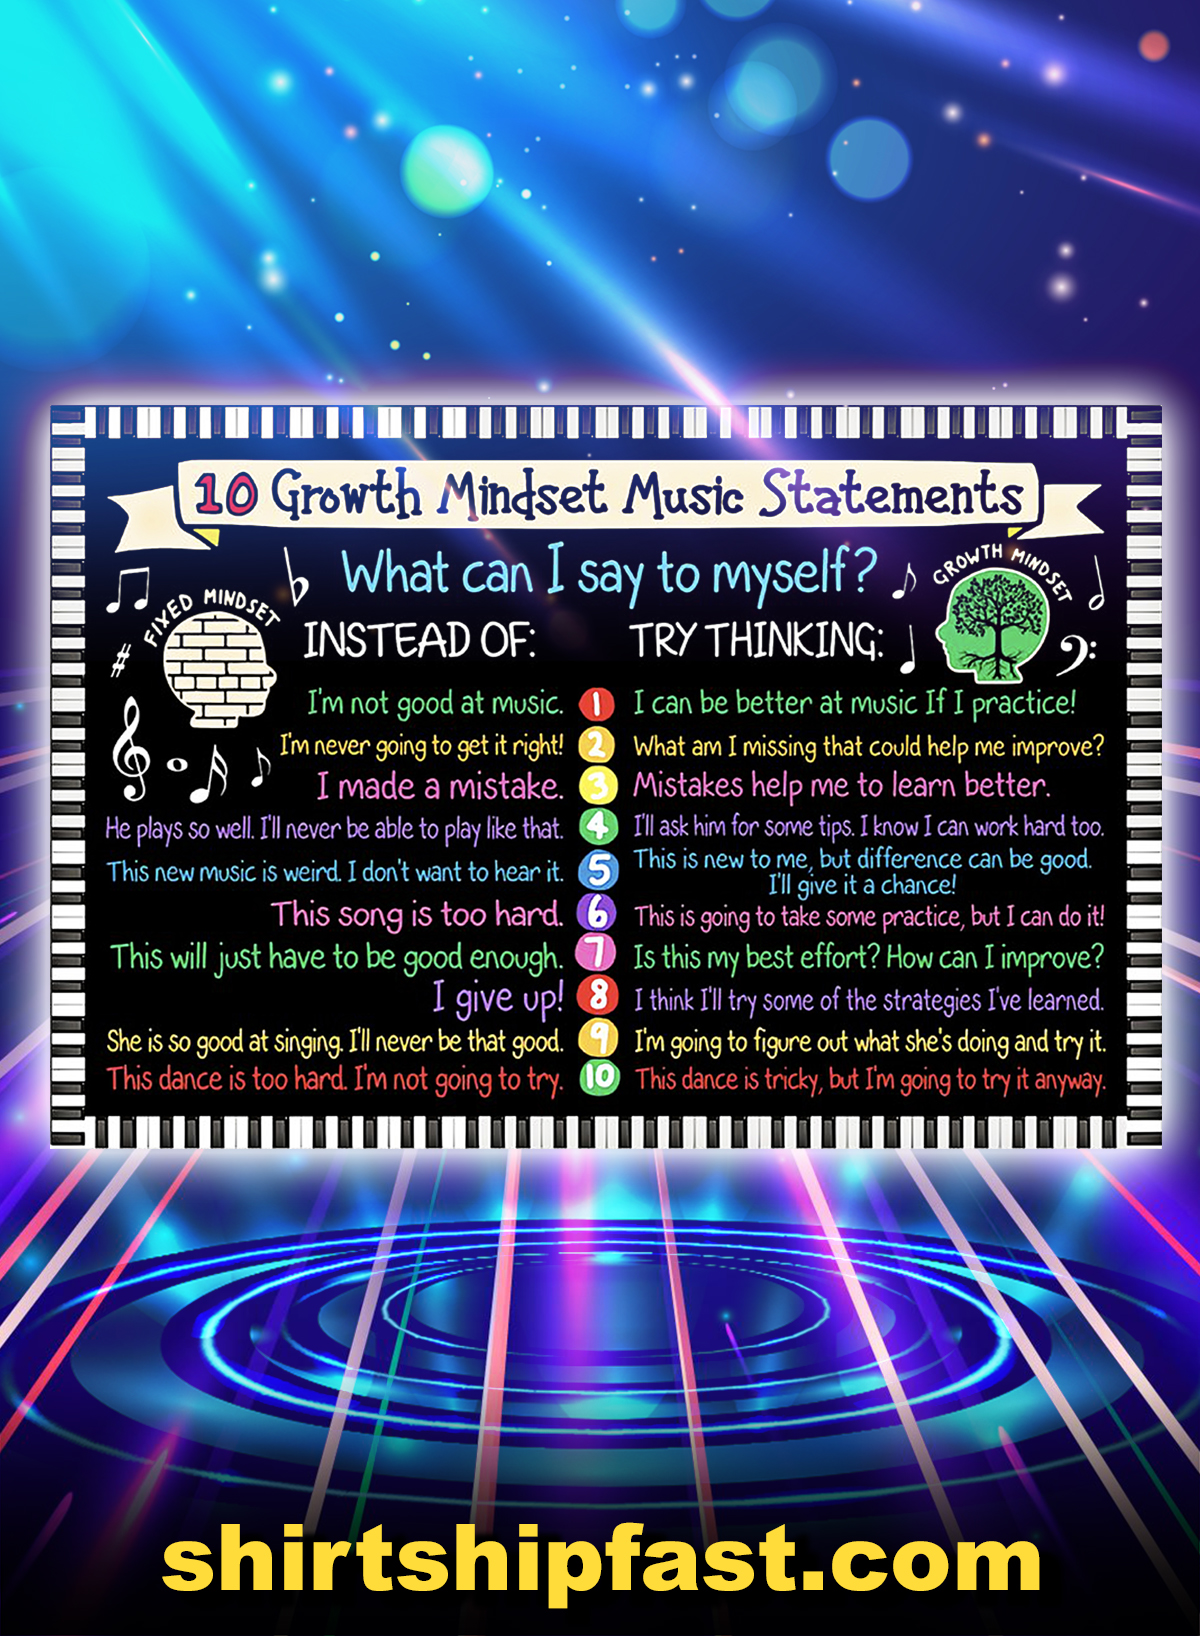 10 growth mindset music statements poster - A4